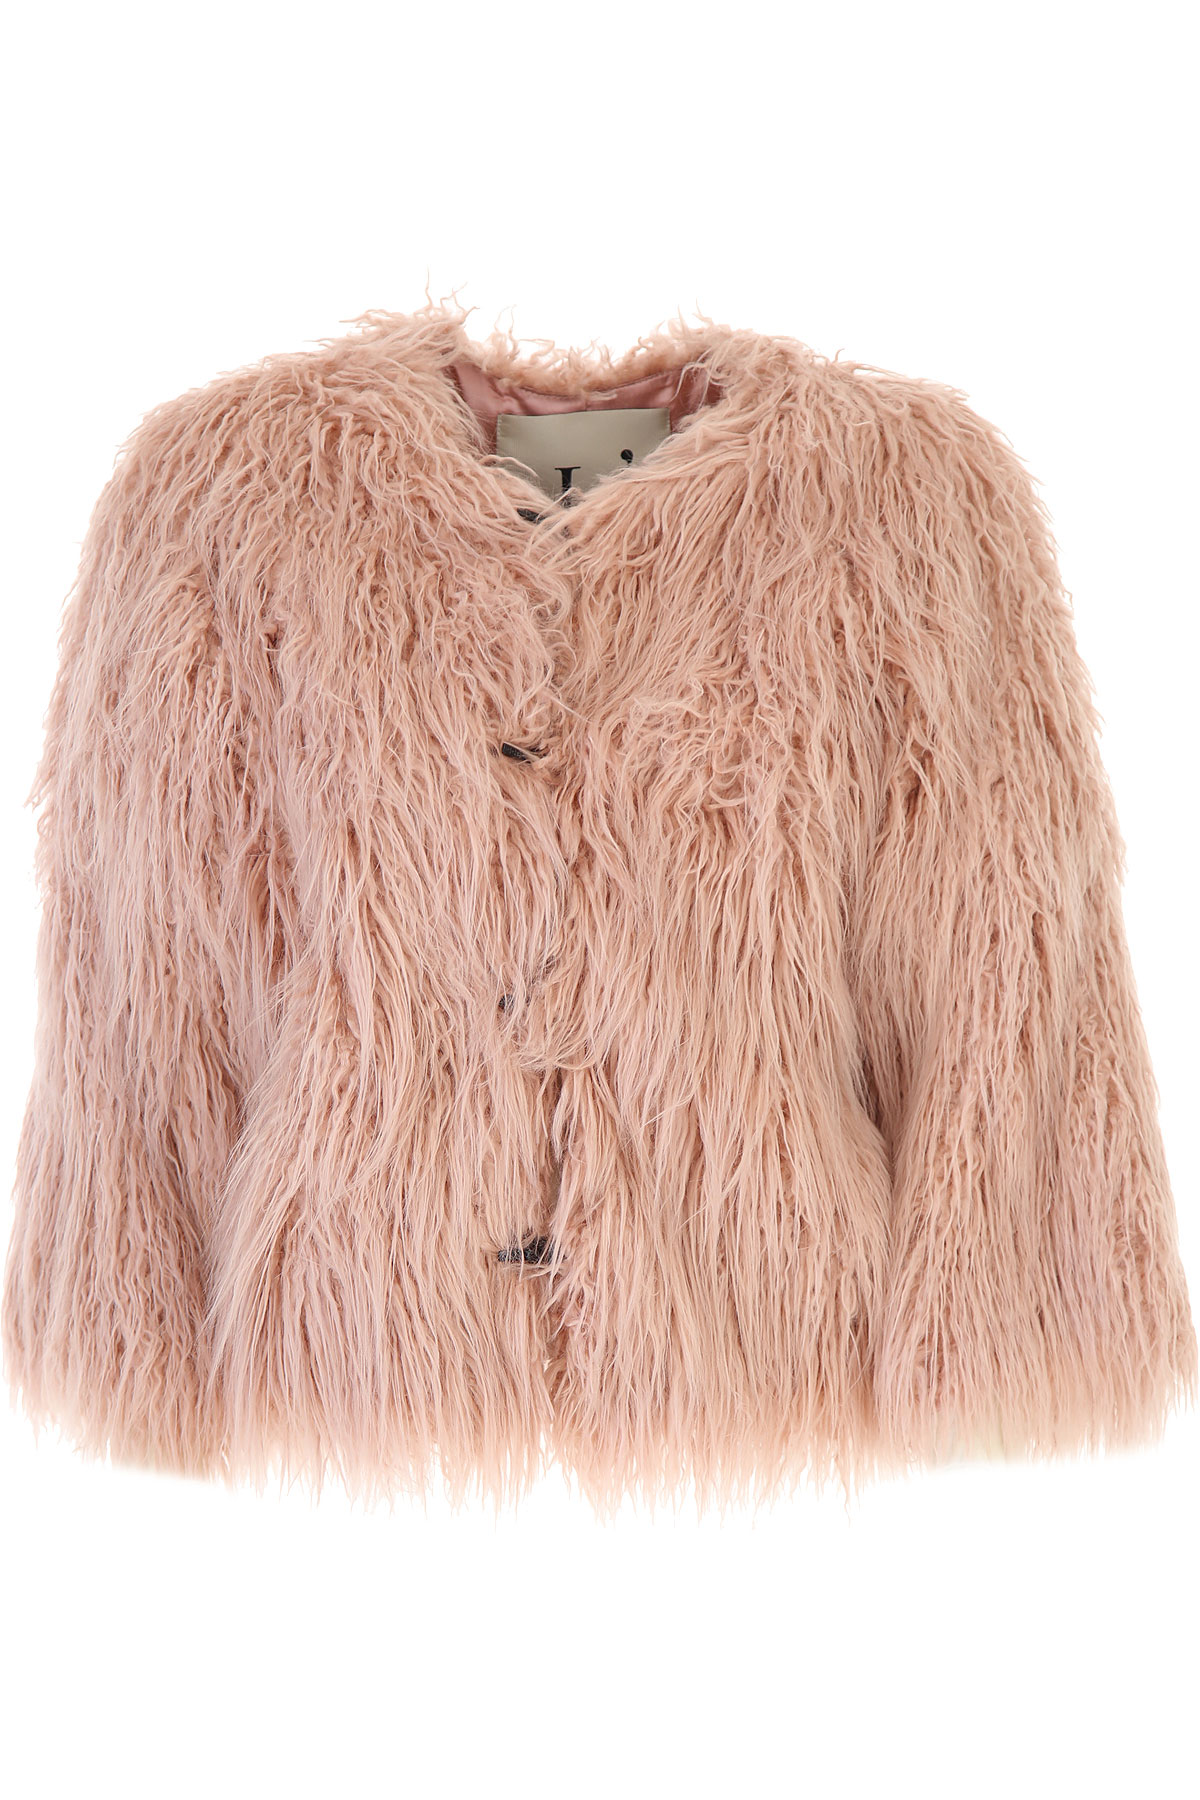 Lautre Chose Jacket for Women On Sale, Pink, modacrylic, 2019, 4 6